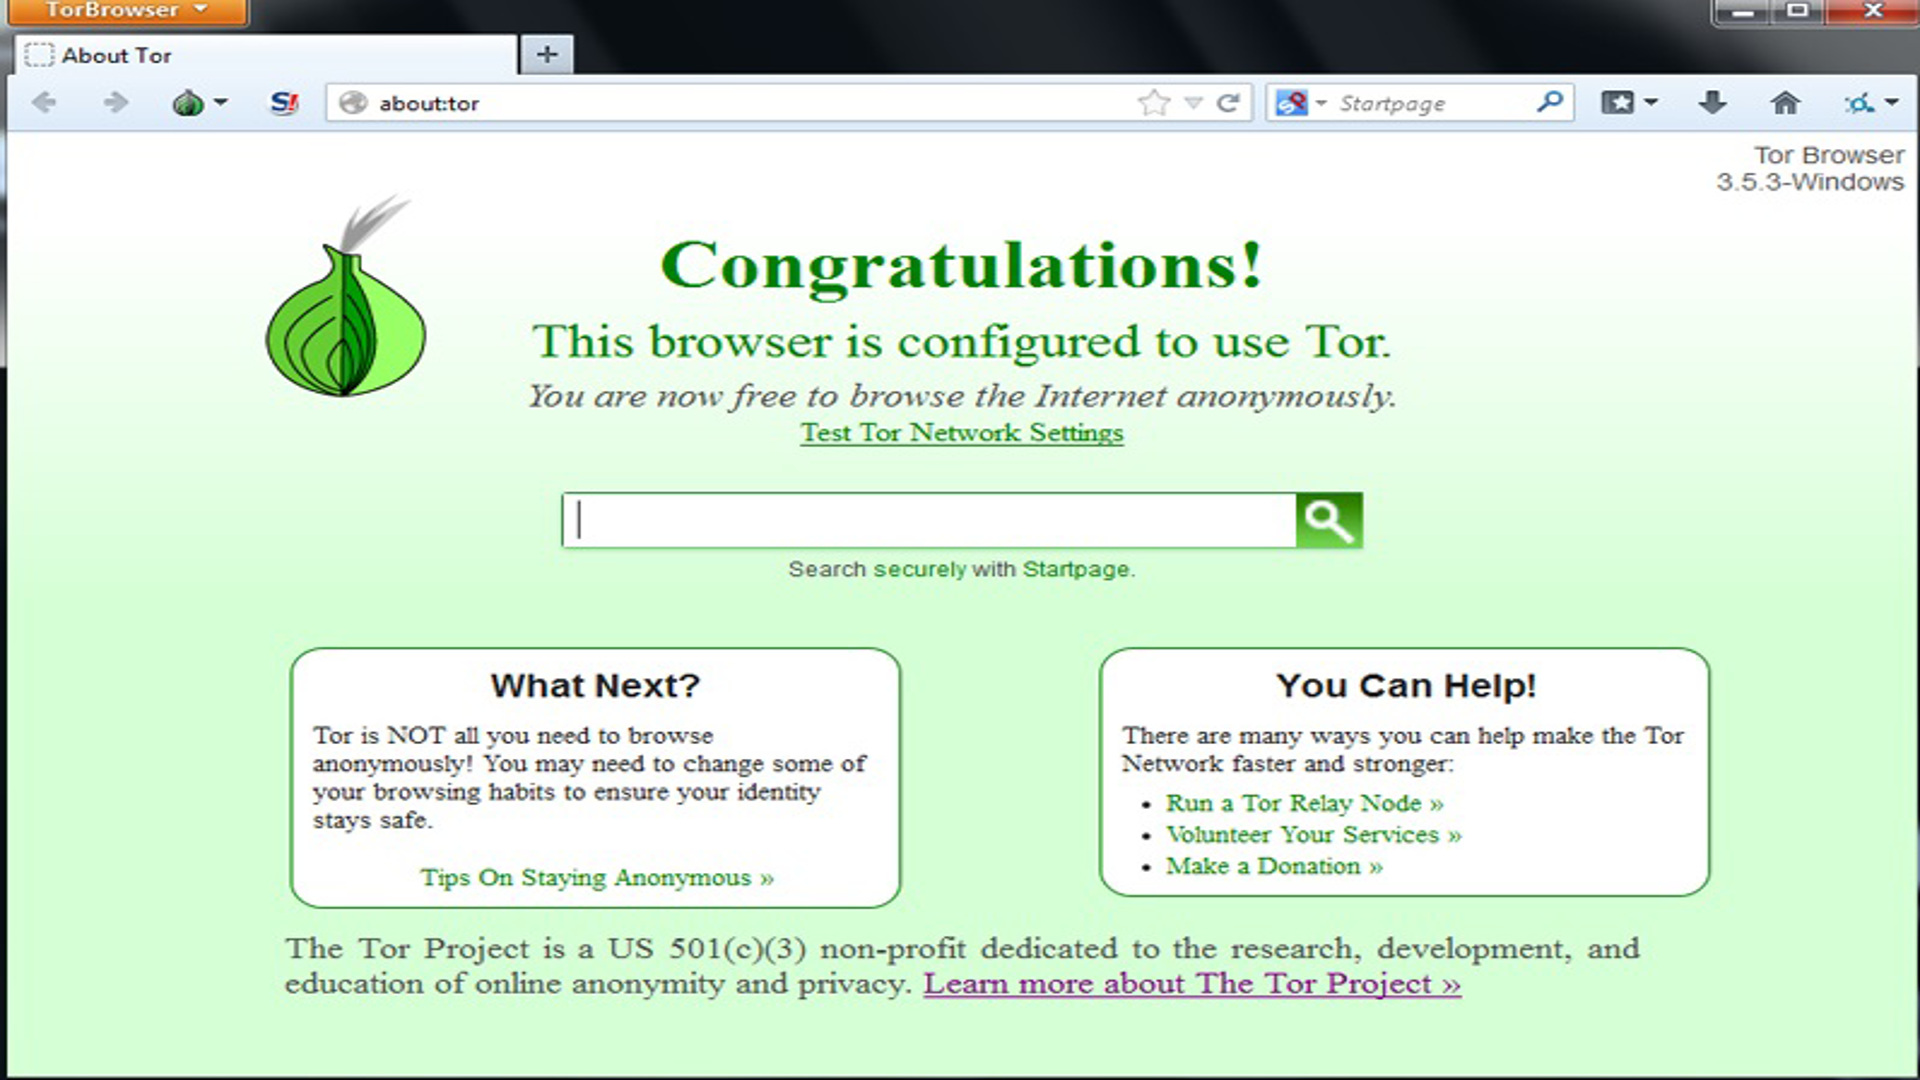 tor browser on windows 8 hyrda